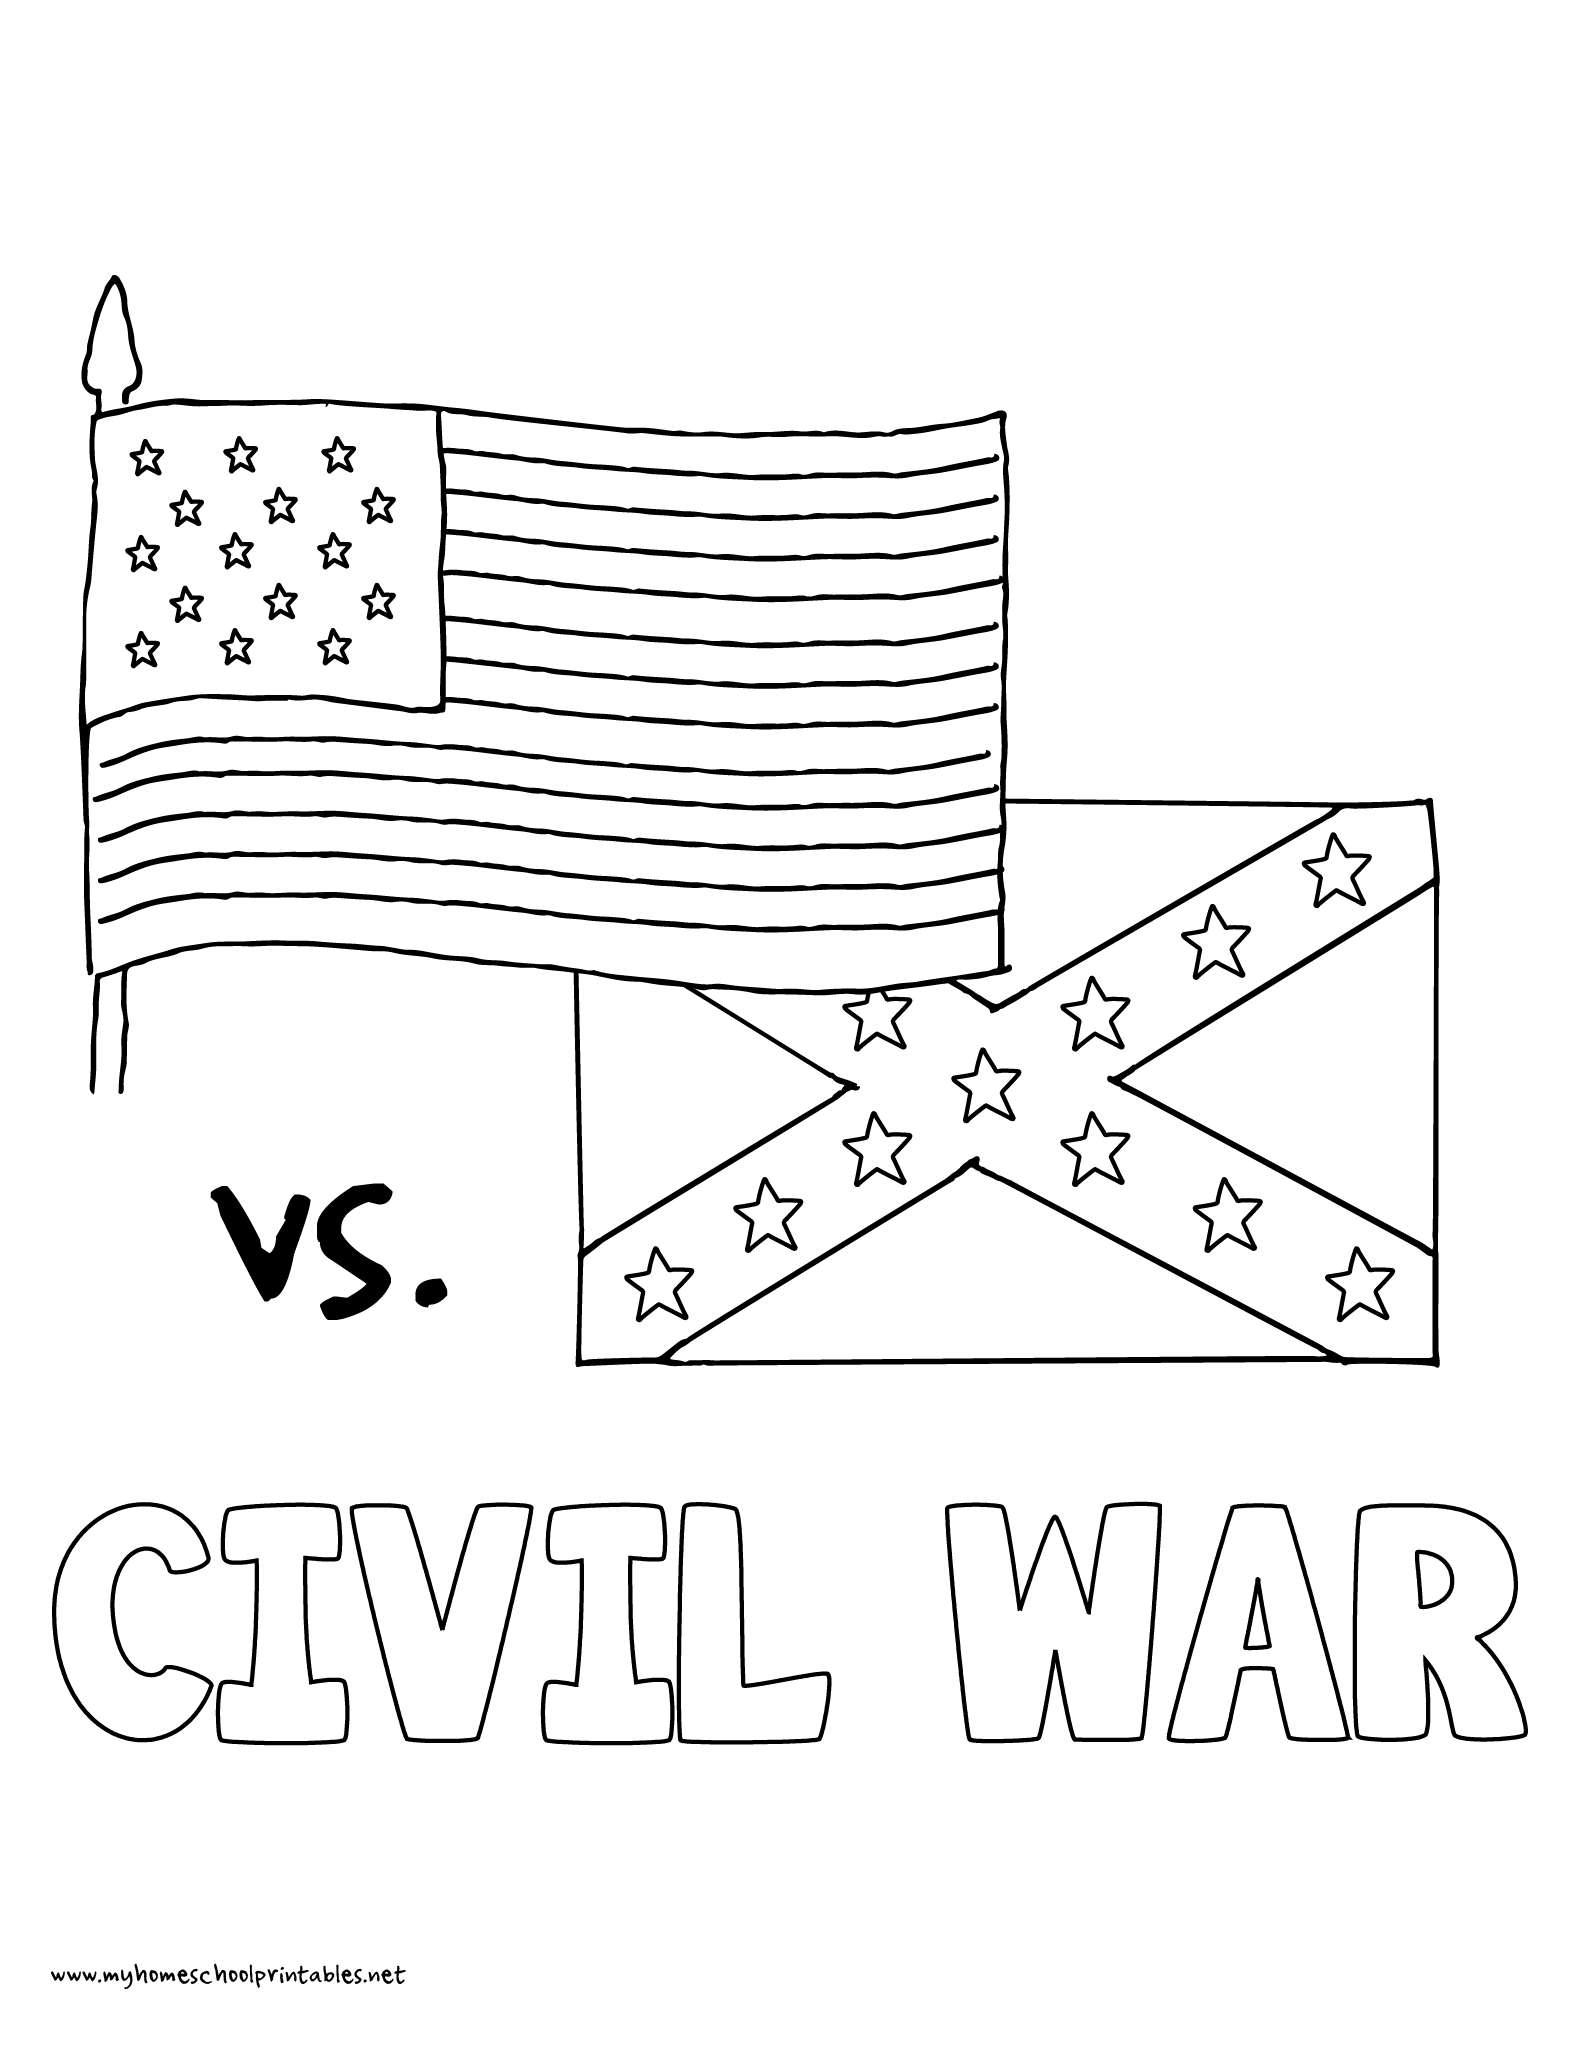 civil war coloring page my homeschool printables history coloring pages volume 4 coloring war civil page